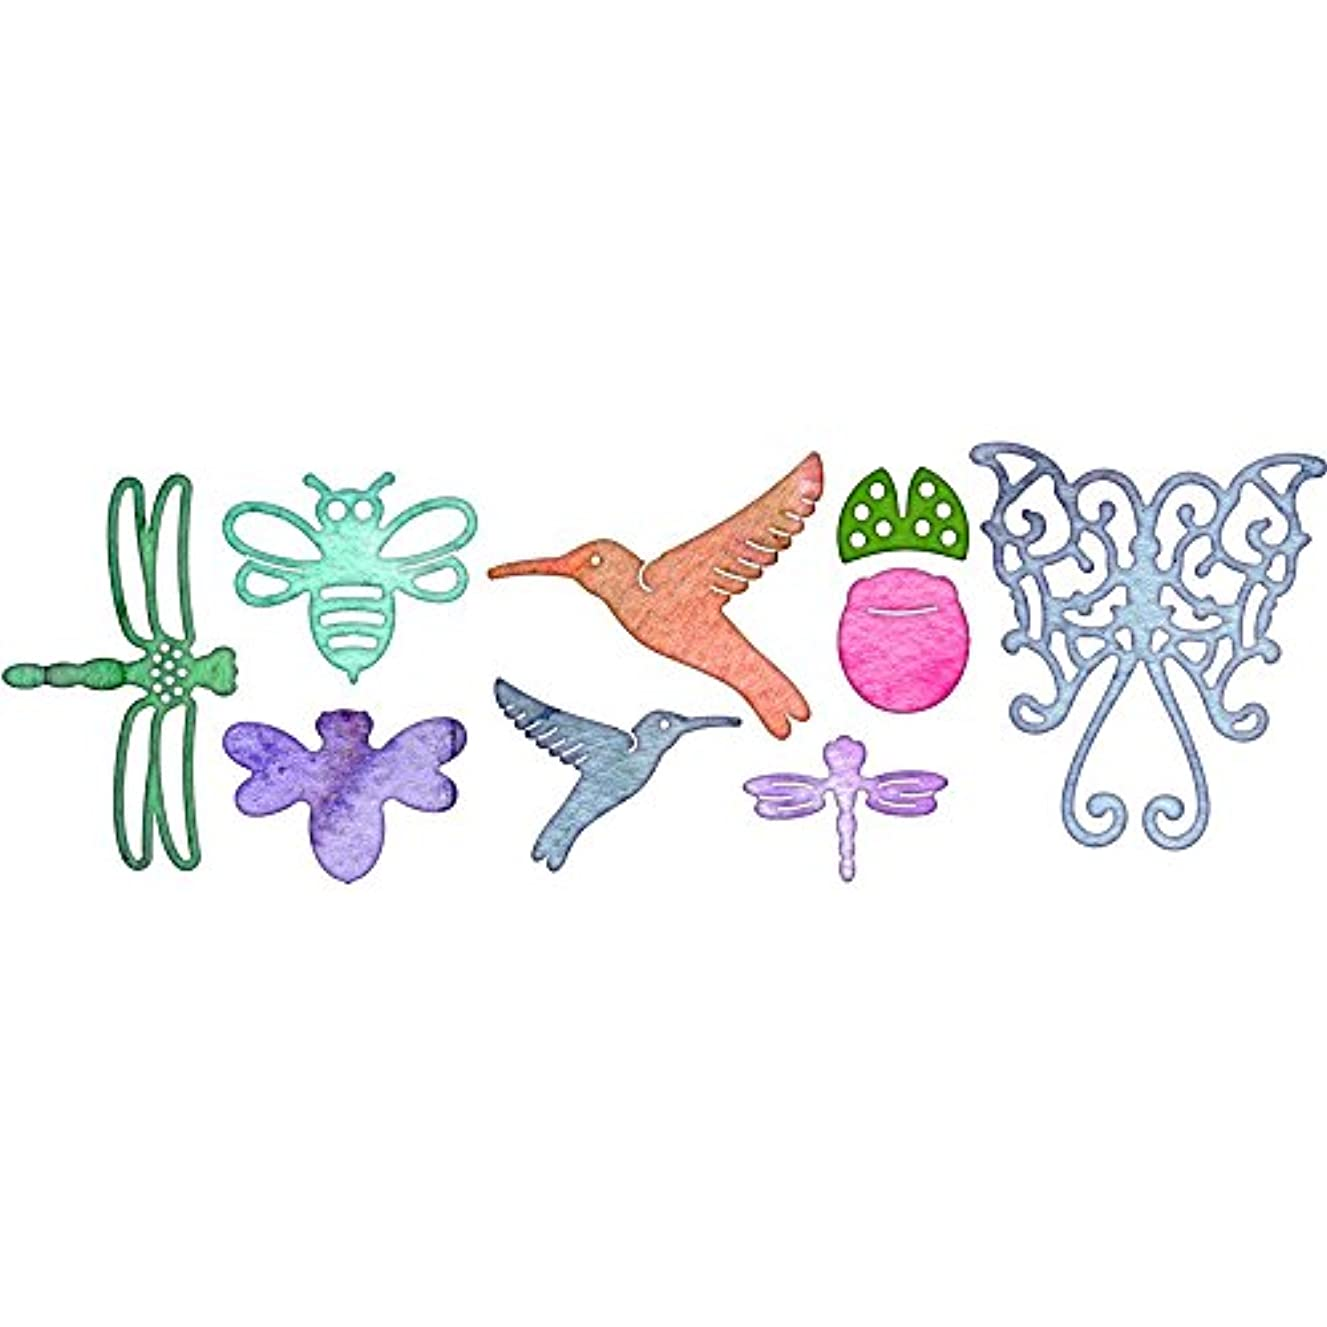 Cheery Lynn Designs B266 Tiny Things with Wings